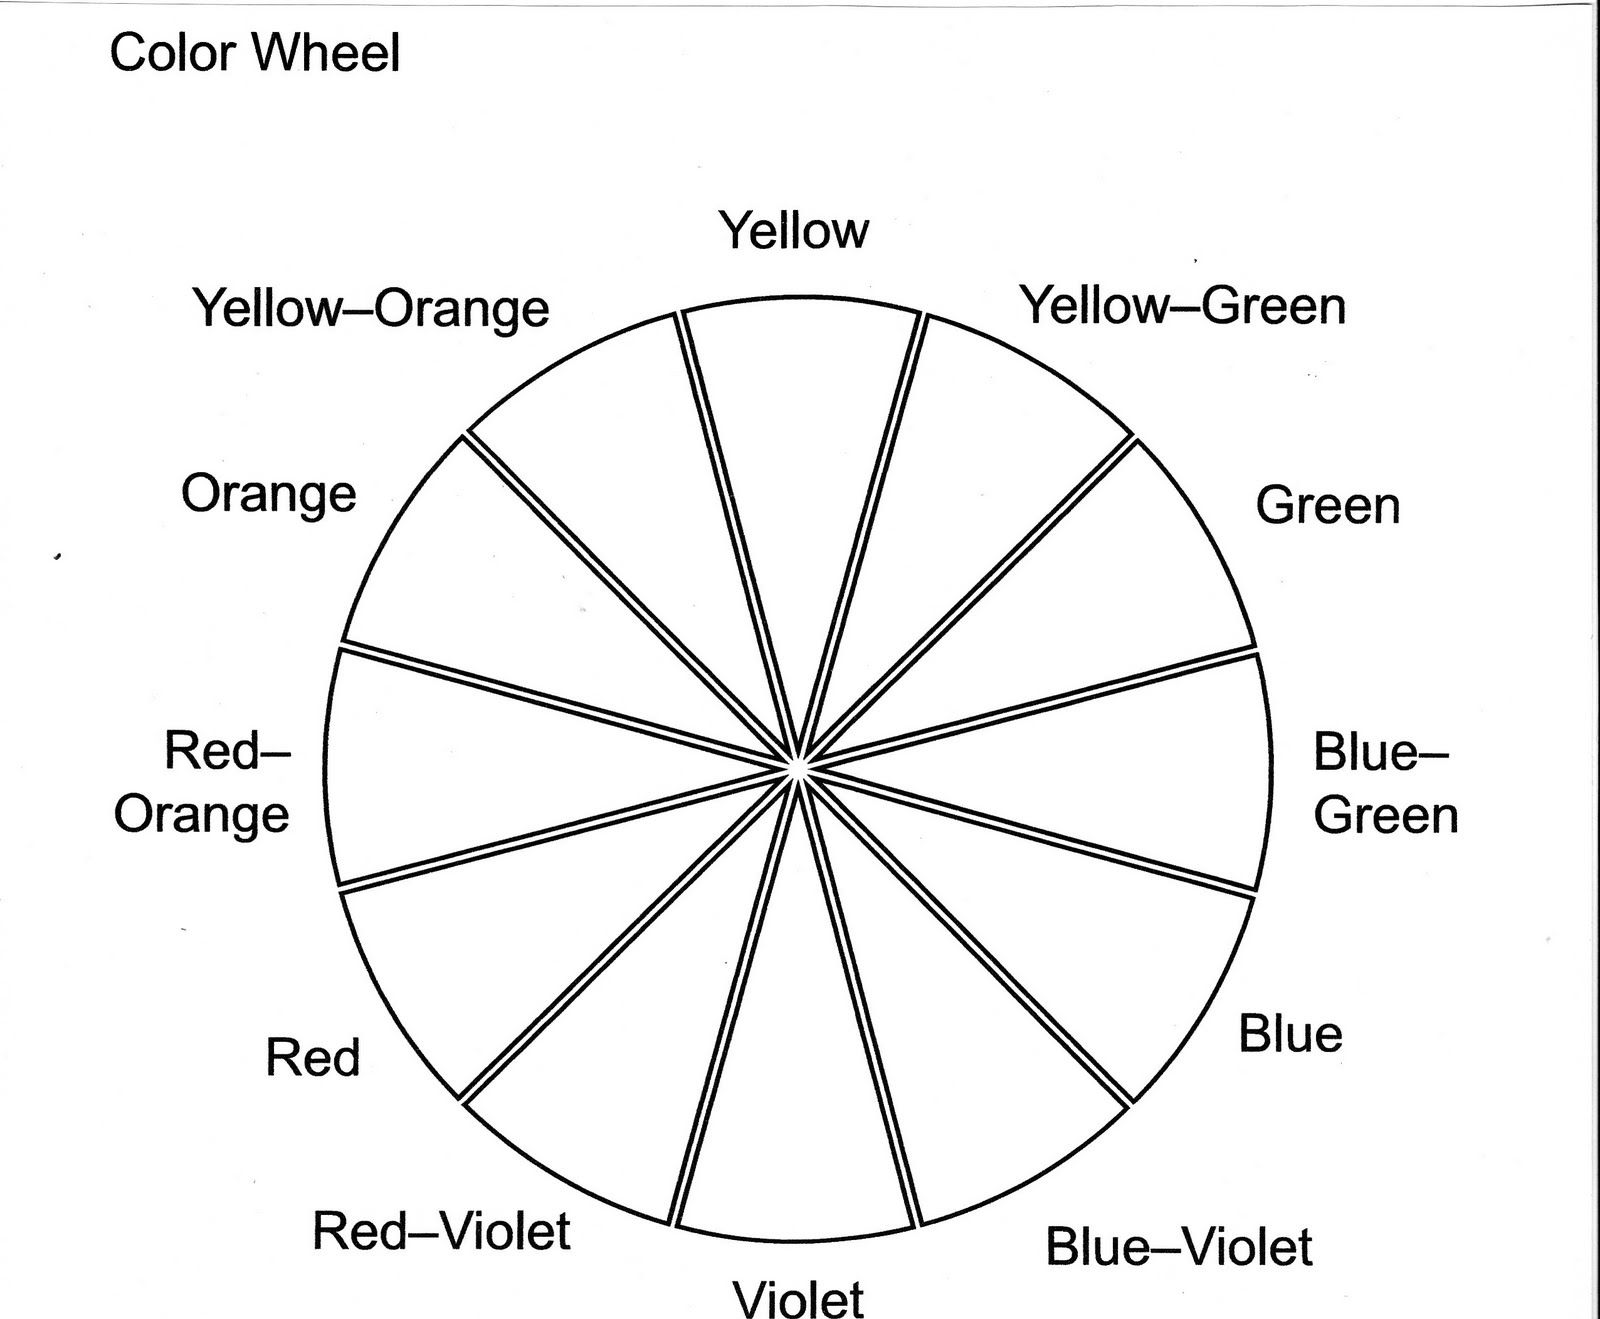 Color Wheel Worksheet Printable